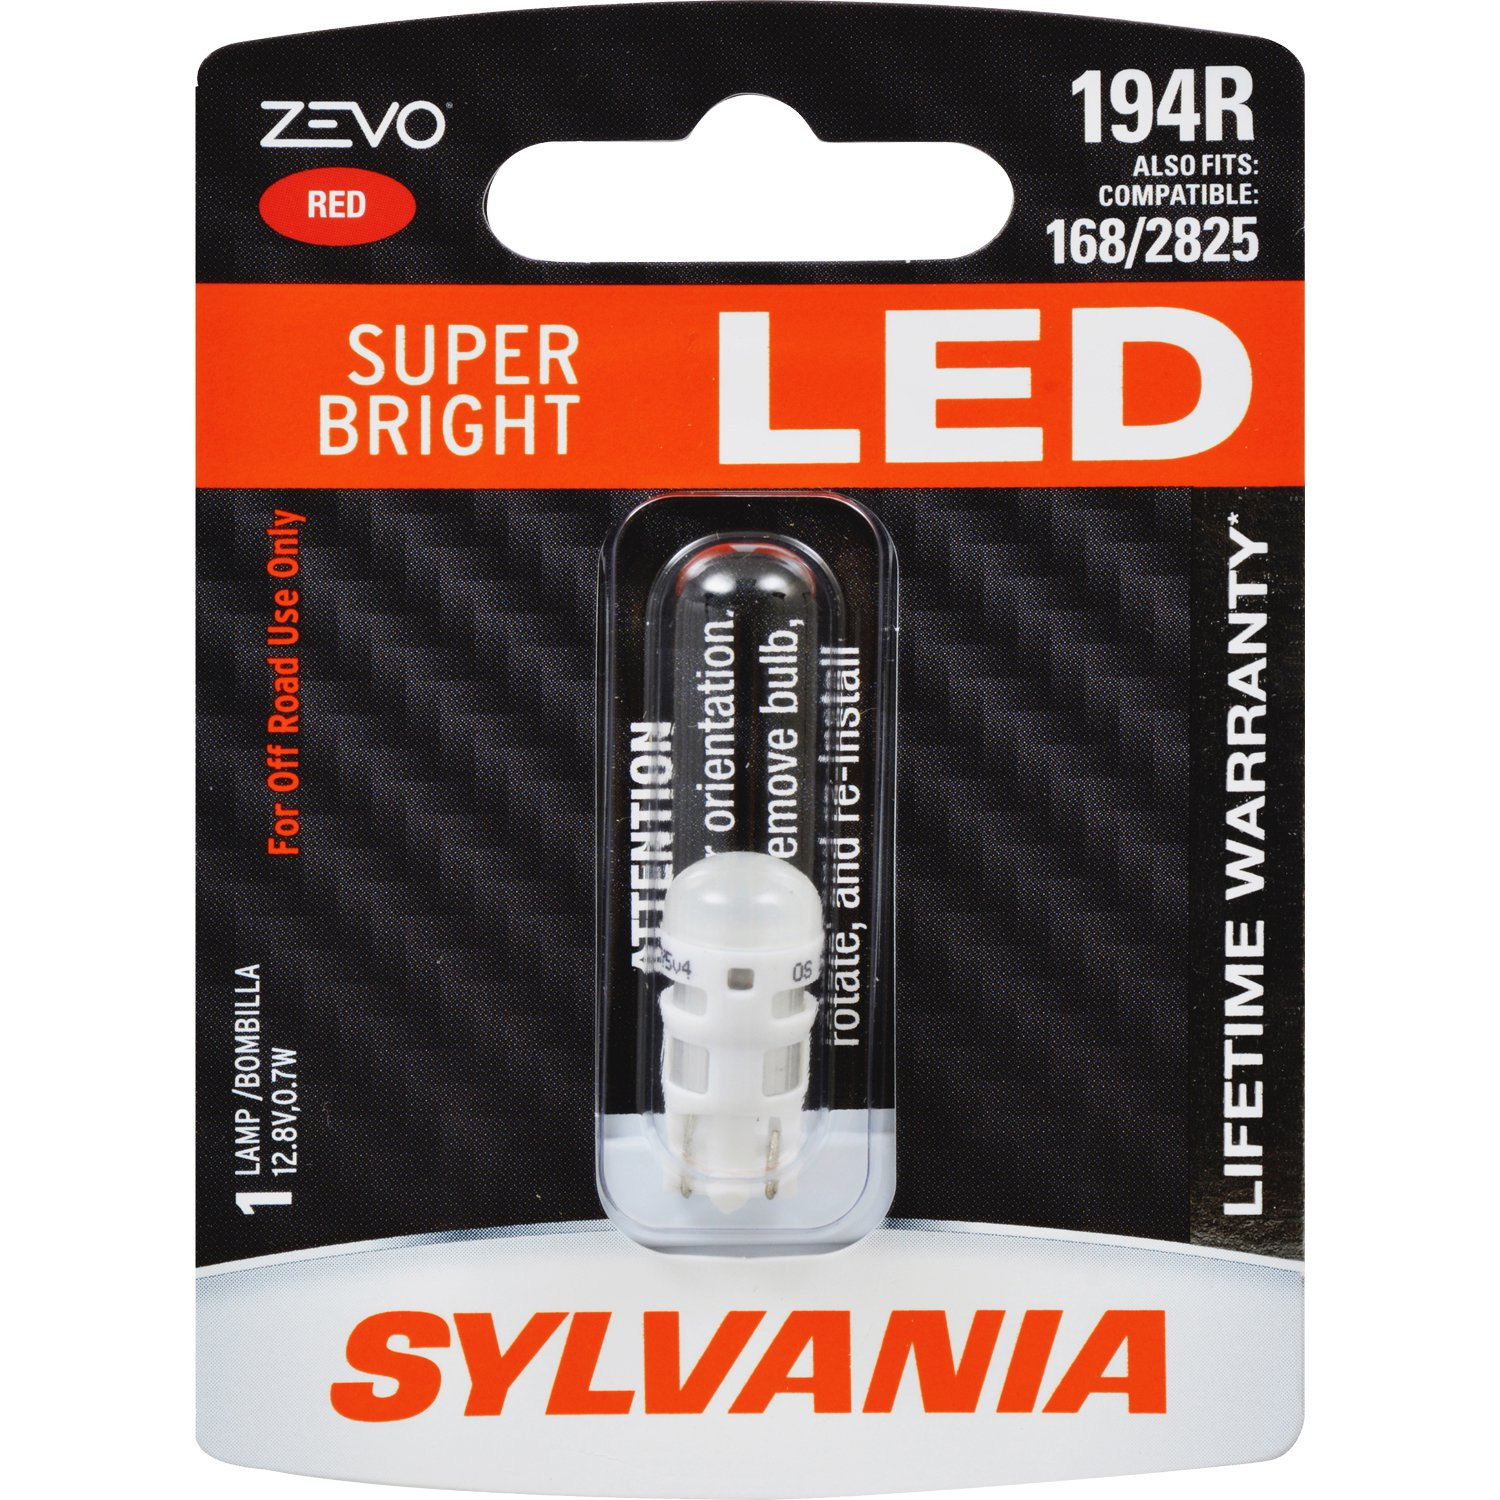 Sylvania 194 T10 W5w Zevo Led Red Bulb Bright Lamp Lightings Gt Wholesale Lamps 5mm Leds Ideal For Interior Lighting Contains 1 Automotive